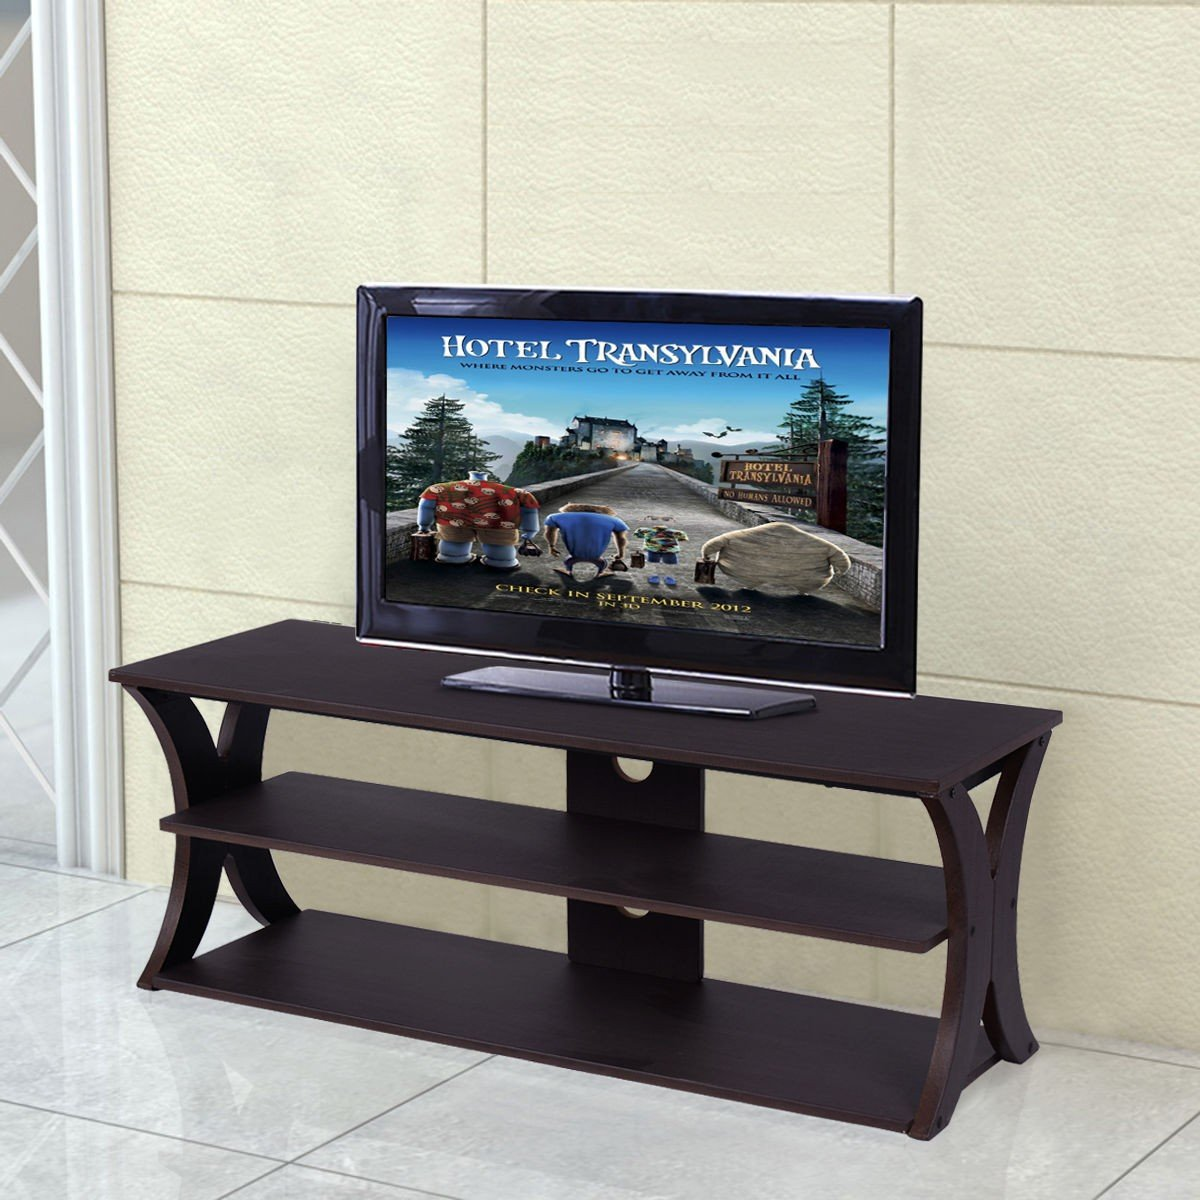 3-Tier TV Stand Brown Home Media Furniture Table With Ebook